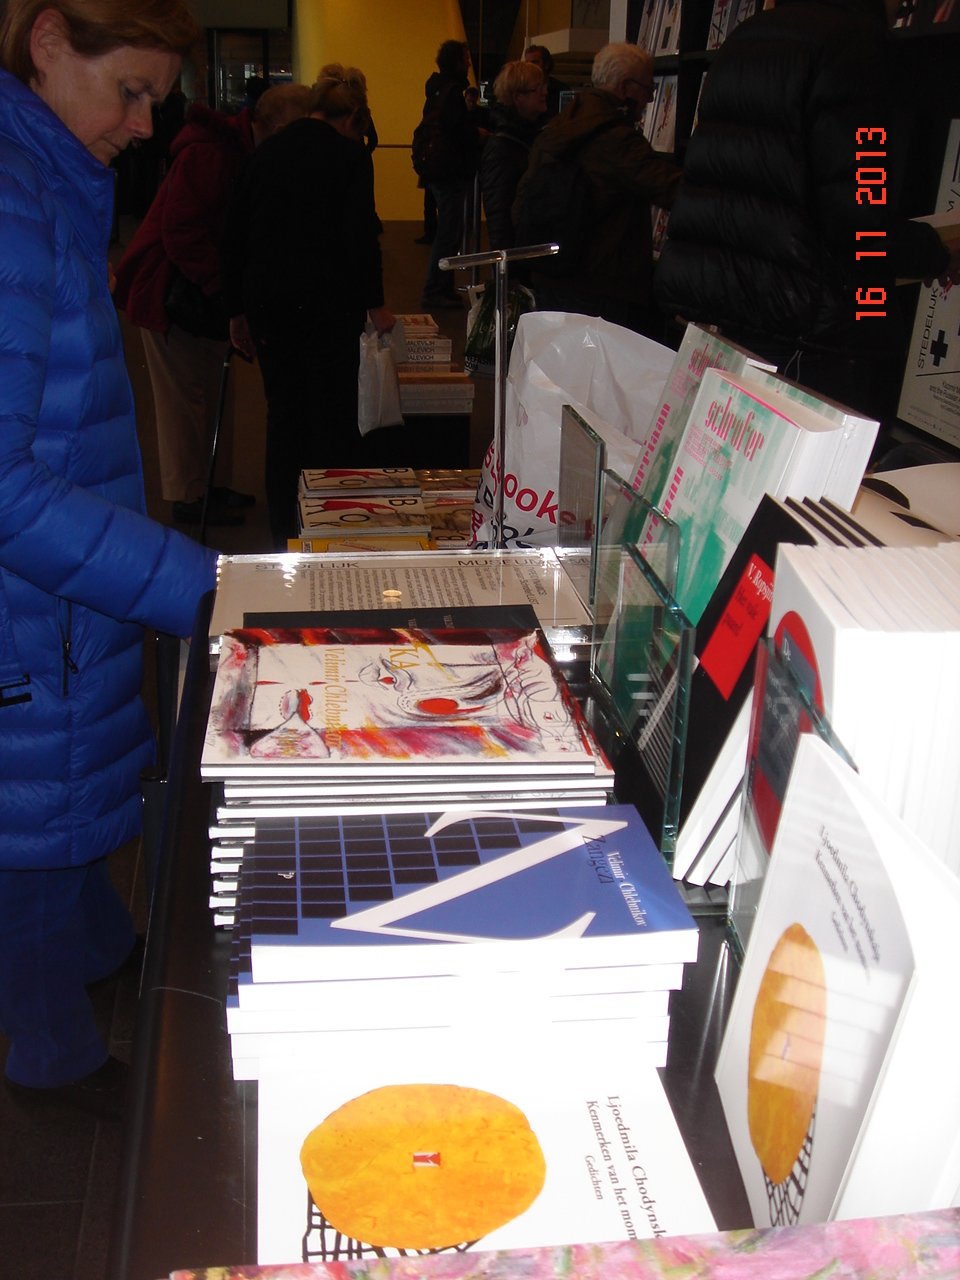 My book sales on Malevich expos. in Stedelijk museum Amsterdam